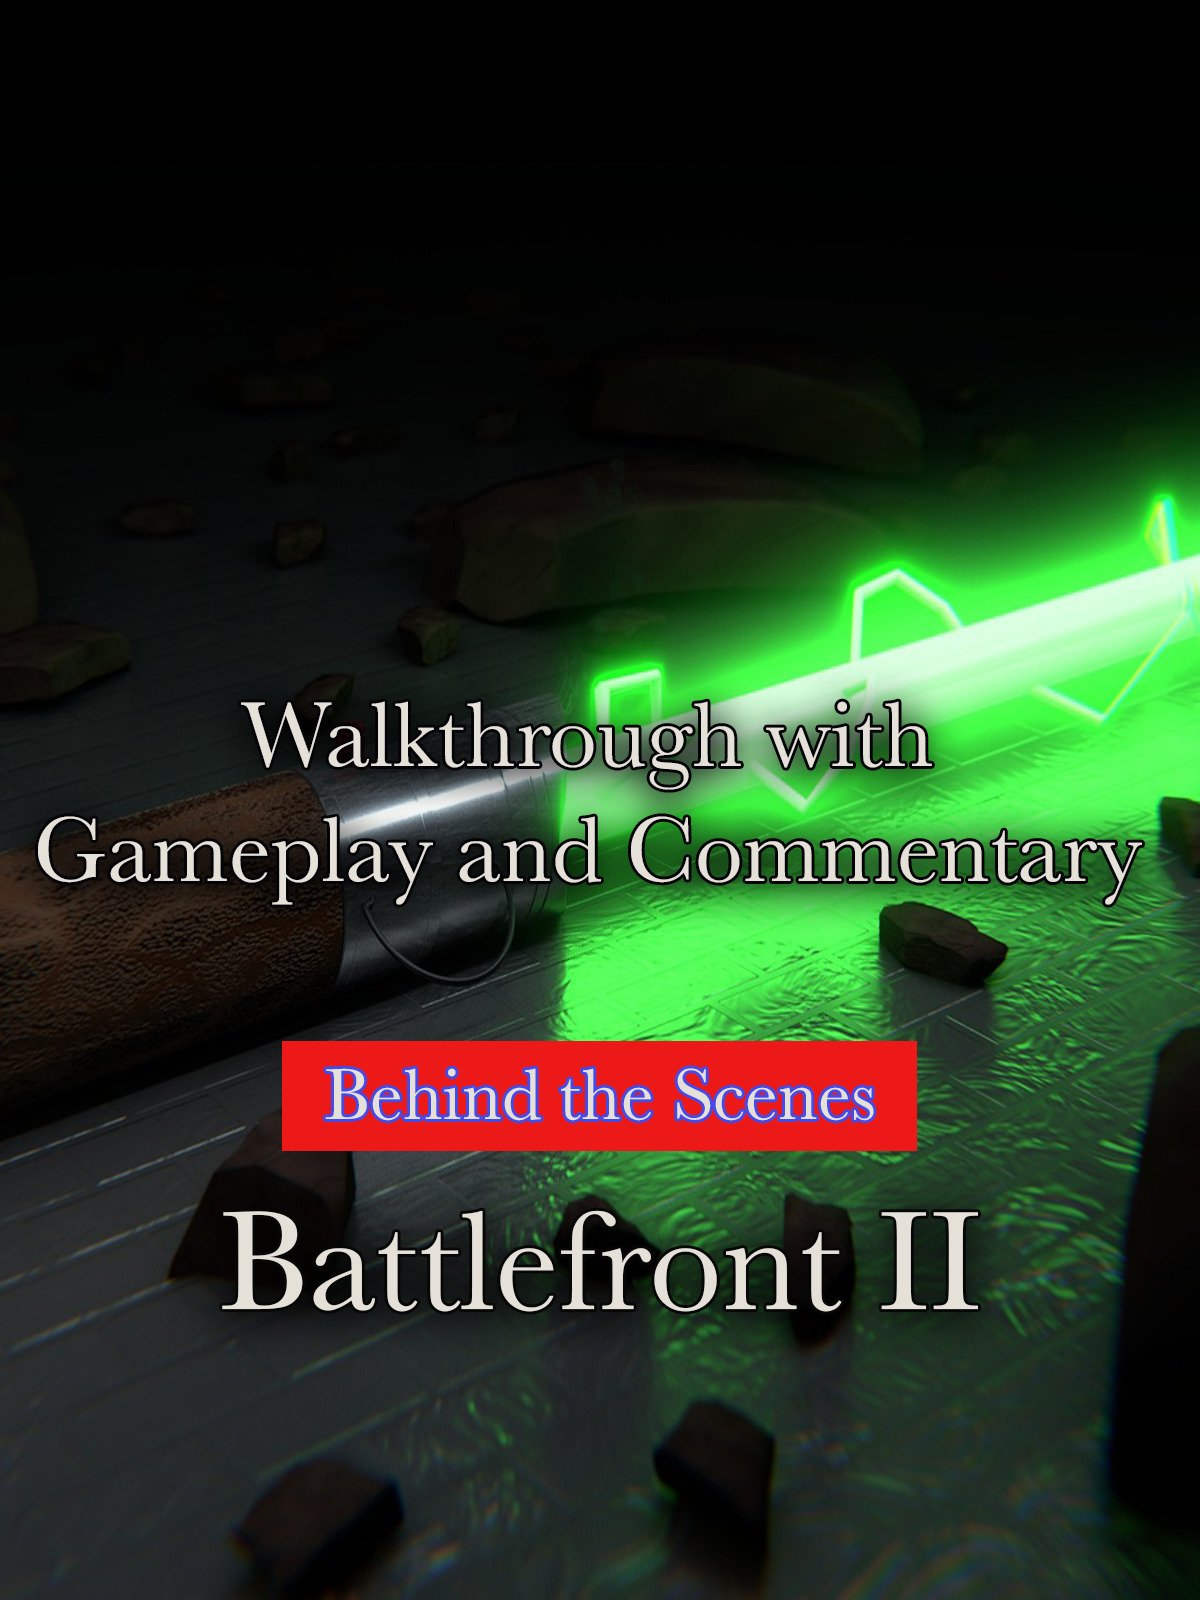 Walkthrough with Gameplay and Commentary Behind the Scenes Battlefront II